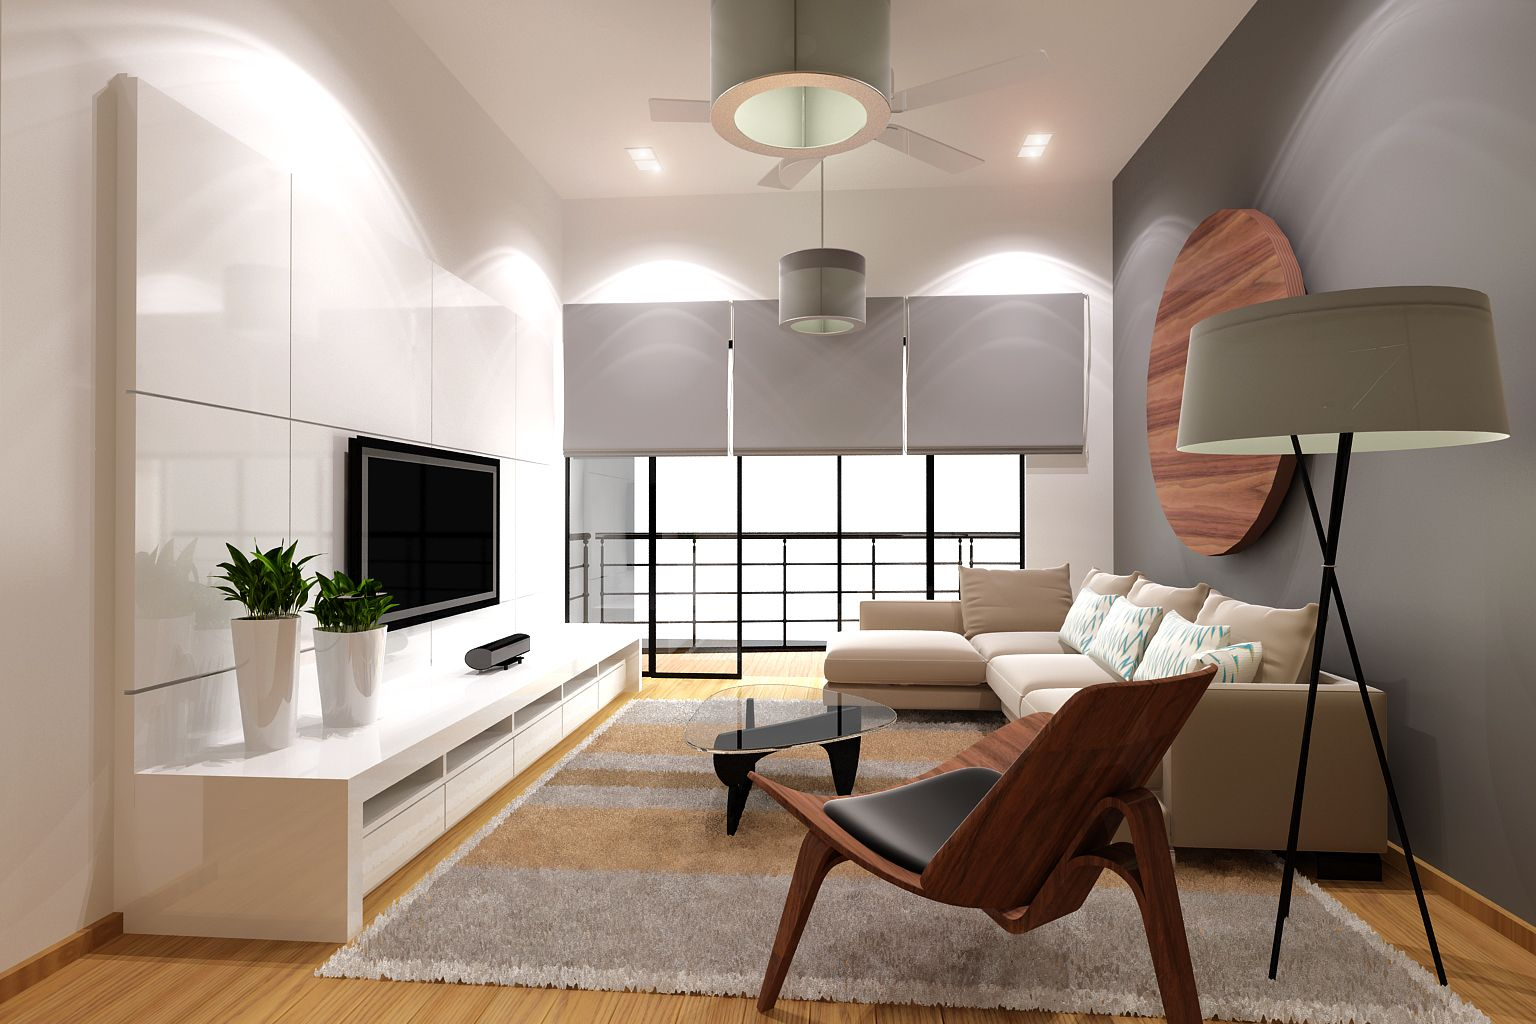 Astonishing Fabulous And Impressive Zen Interior Designs With Wooden Floor And Gray Carpet Condo Interior Design Condo Interior Interior Design Apartment Small